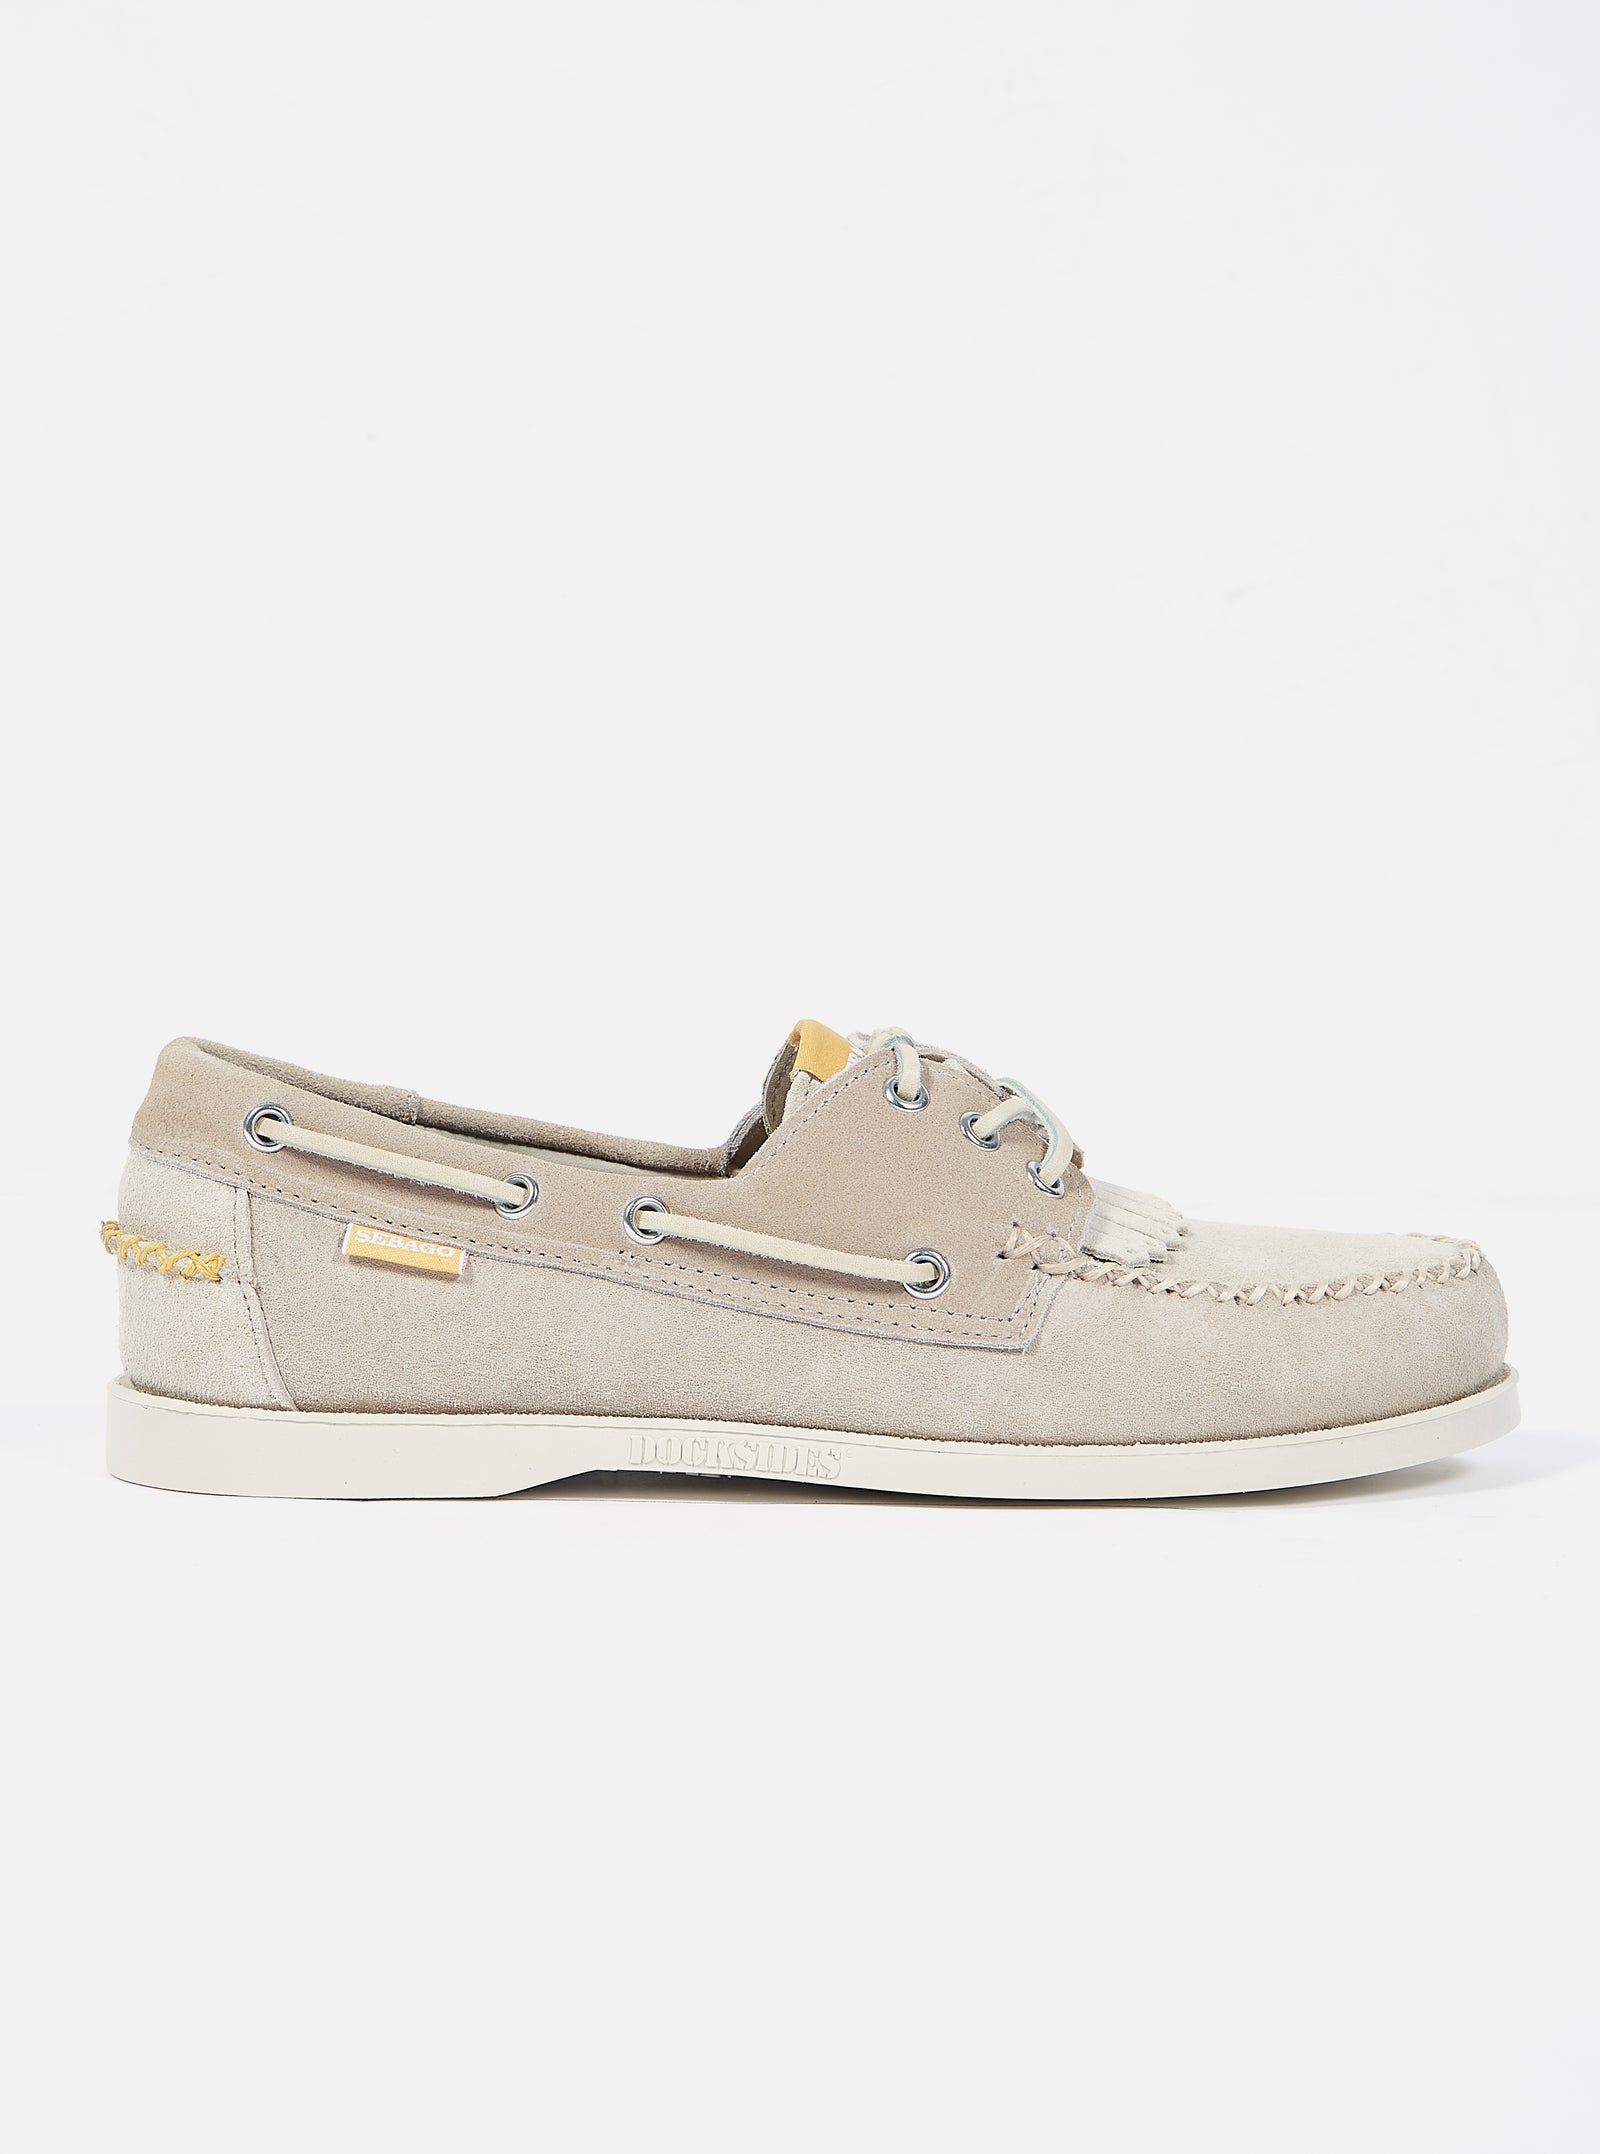 Sebago x Universal Works Portland Multi-Tone in Cream Suede